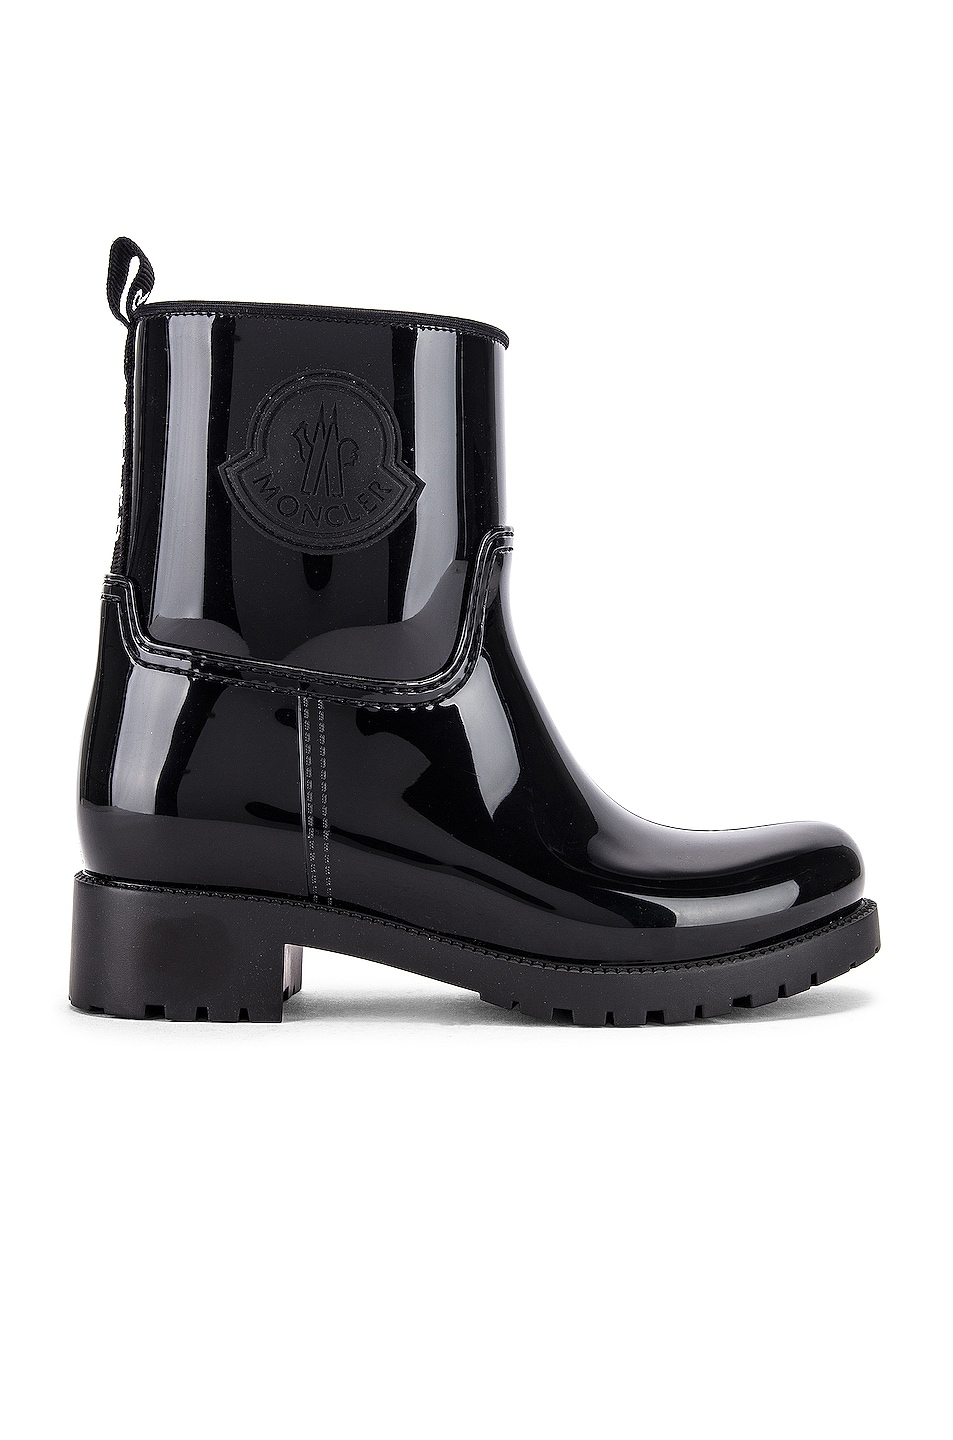 Image 1 of Moncler Ginette Stivale Boot in Black